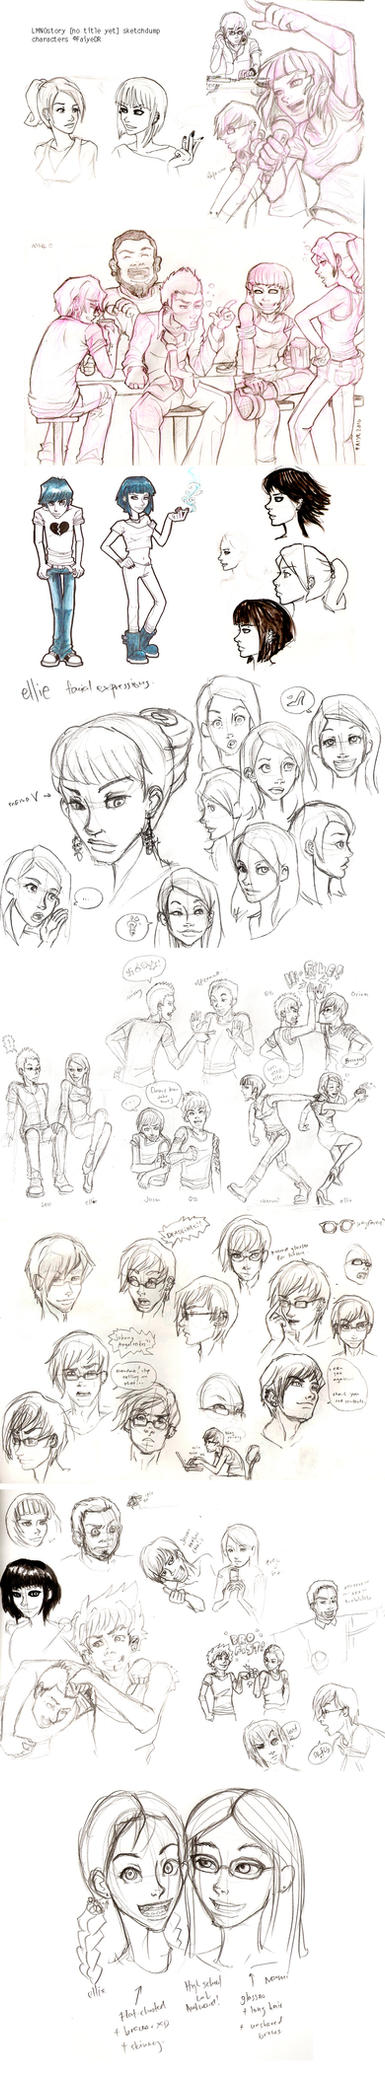 Massive Sketchdump 1 by tropical-angel